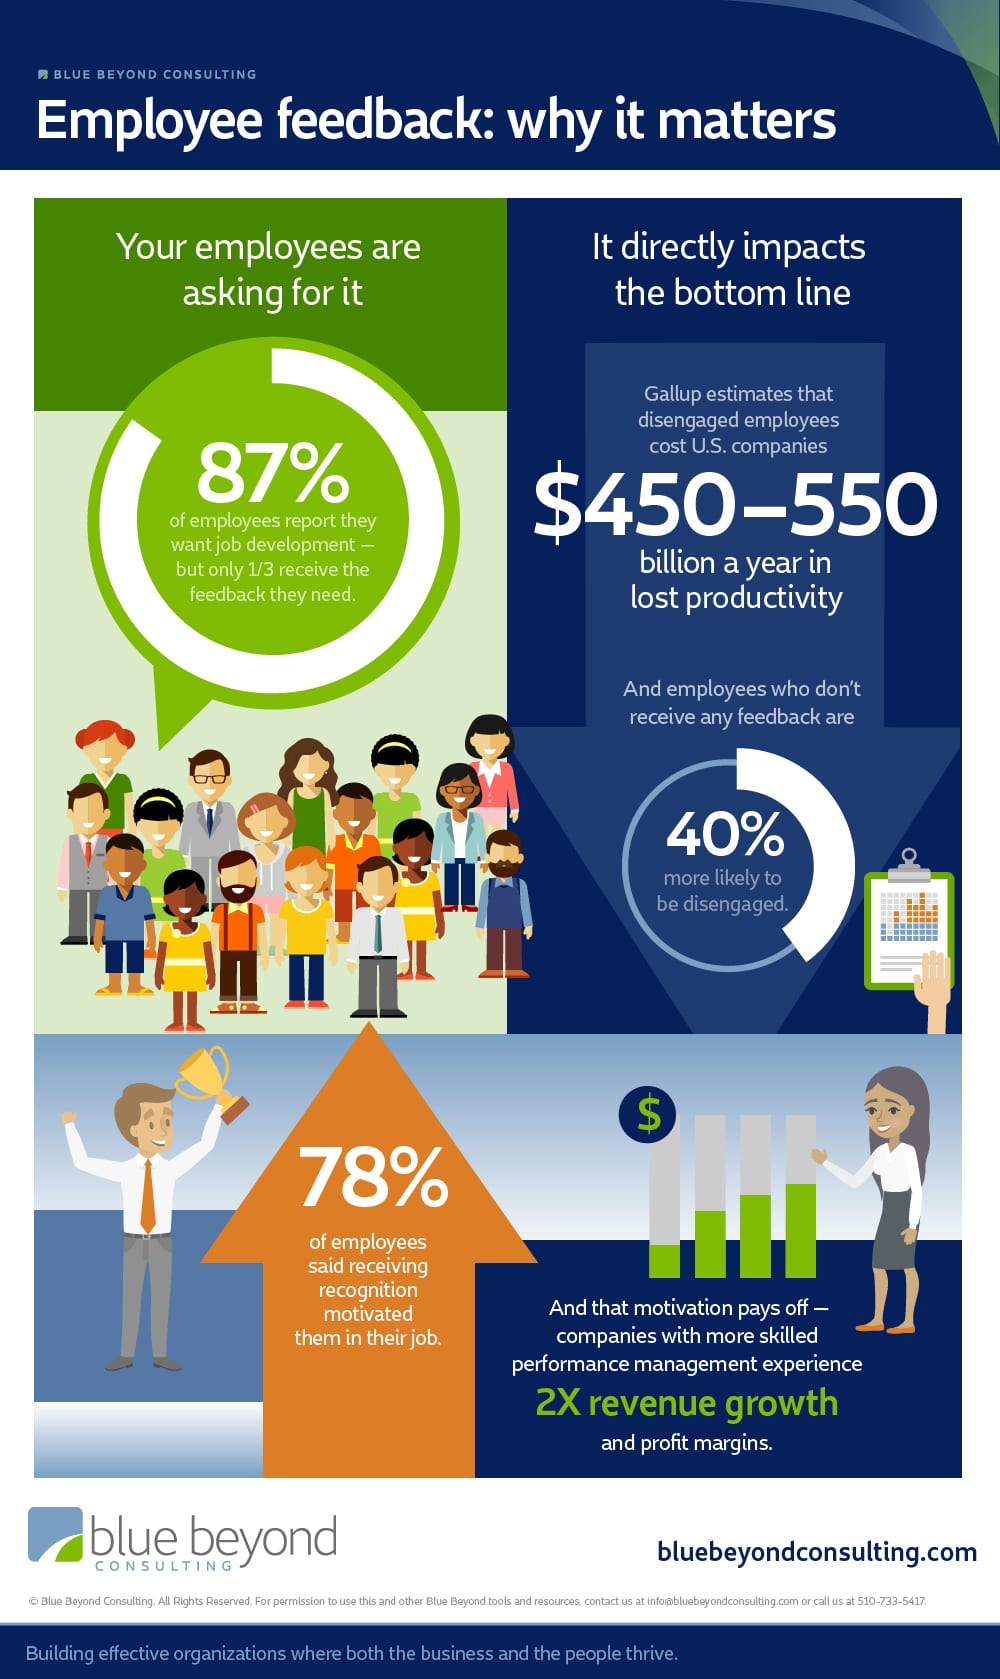 employee feedback why it matters infographic